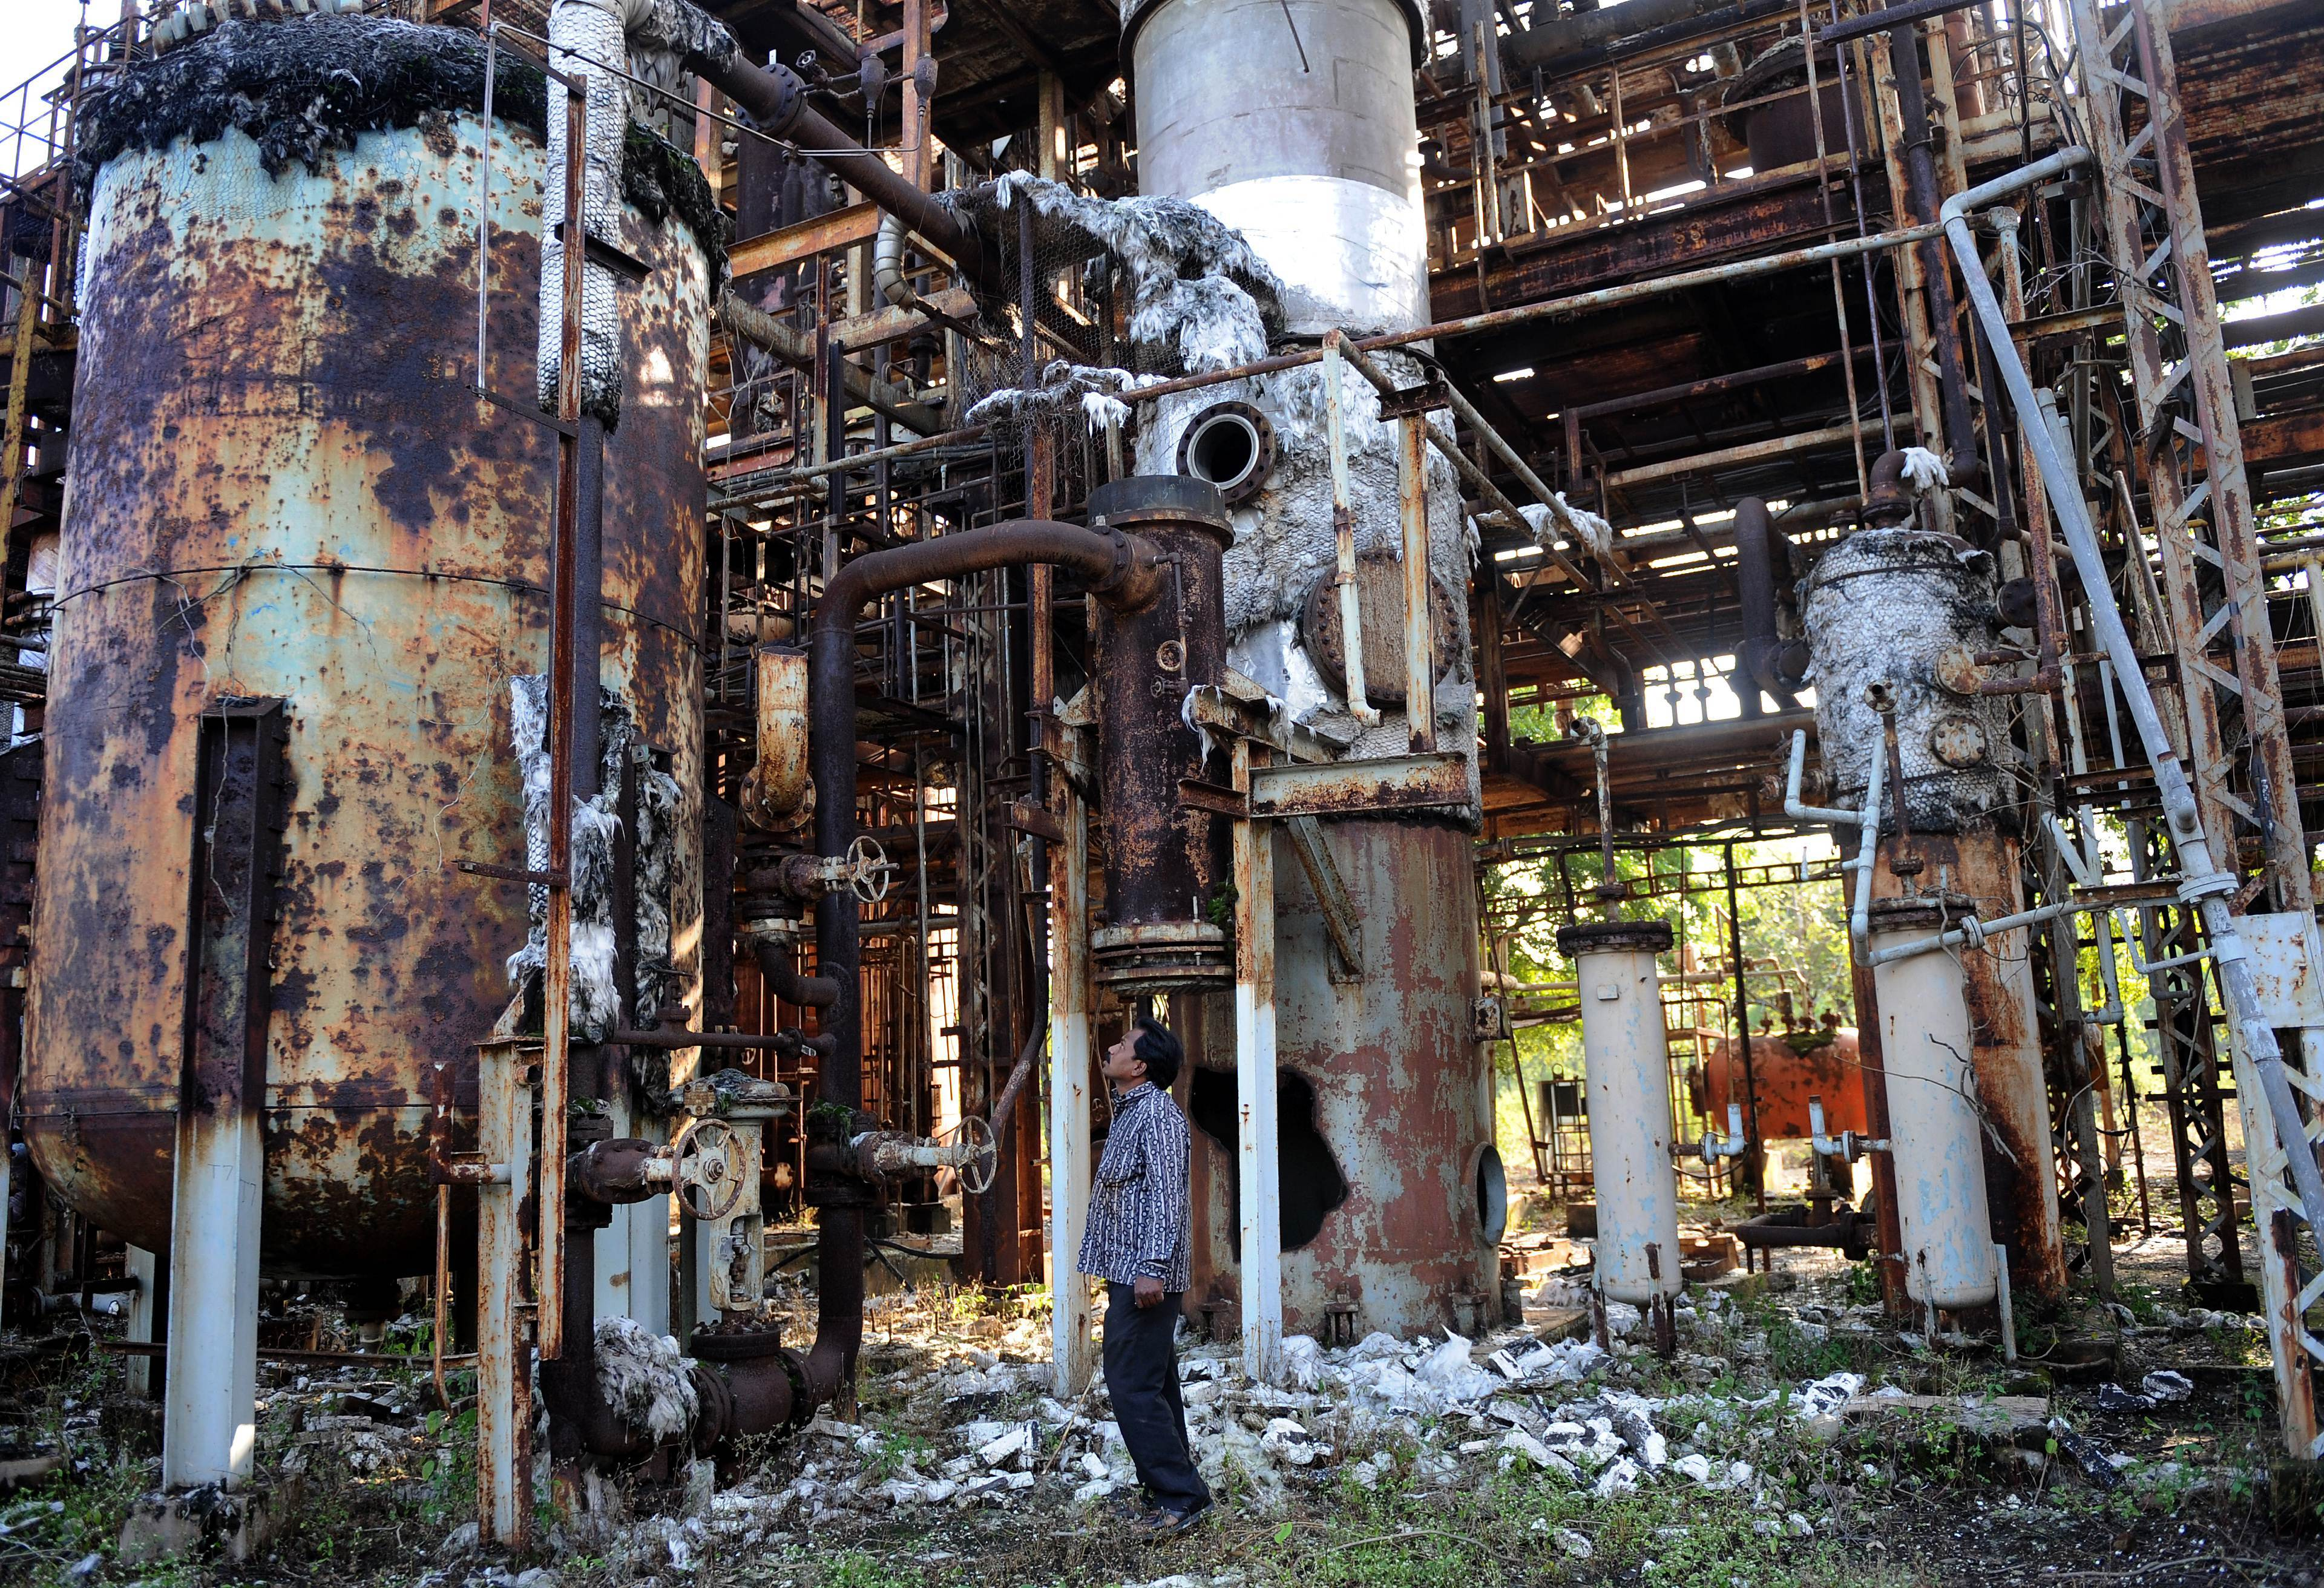 bhopal india chemical accident 1984 essay